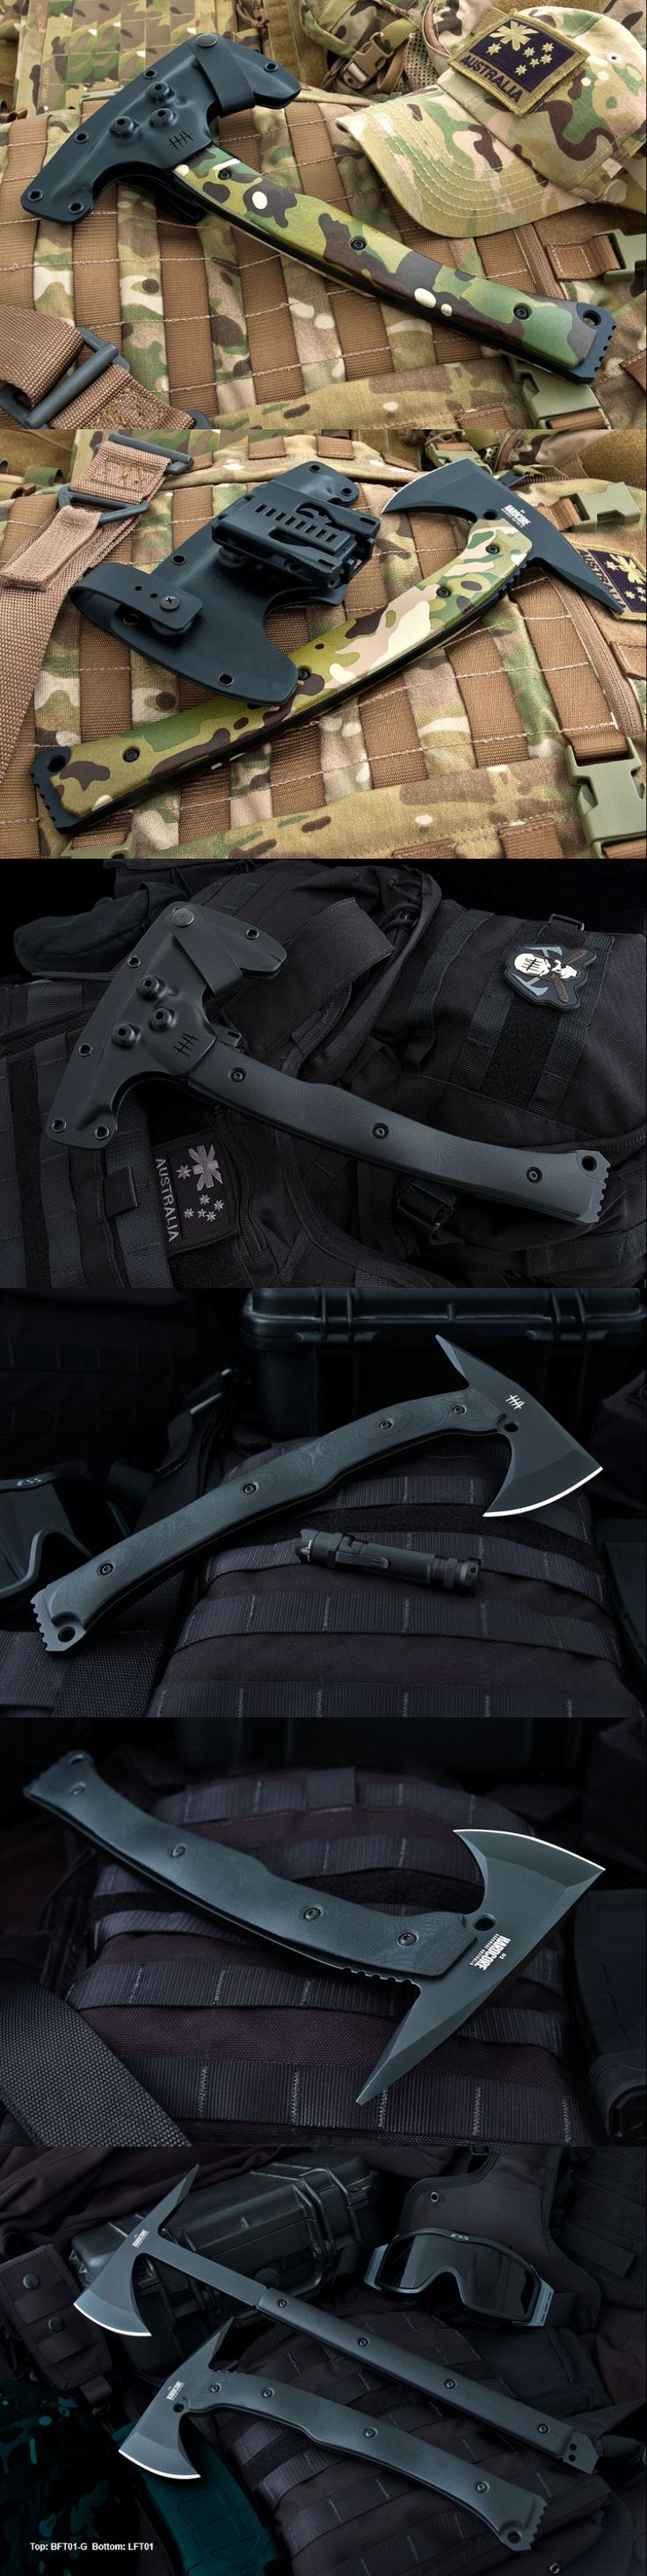 Military LFT01 tactical tomahawk. Looks a lot like my SOG Tactical Tomahawk. Very nice.